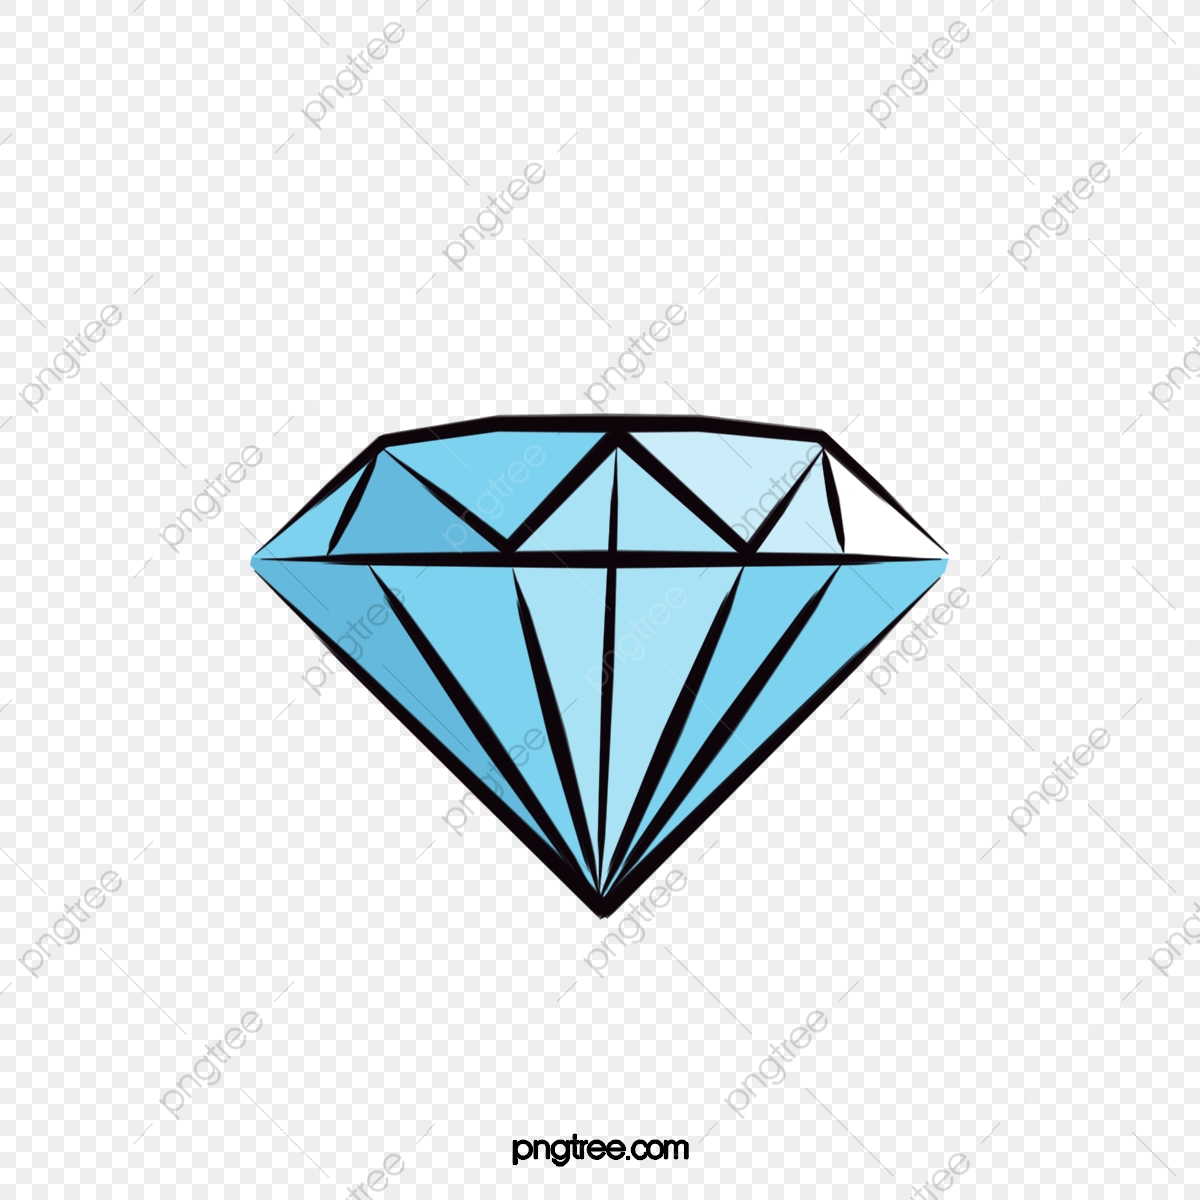 Diamond cartoon. Clipart png transparent image